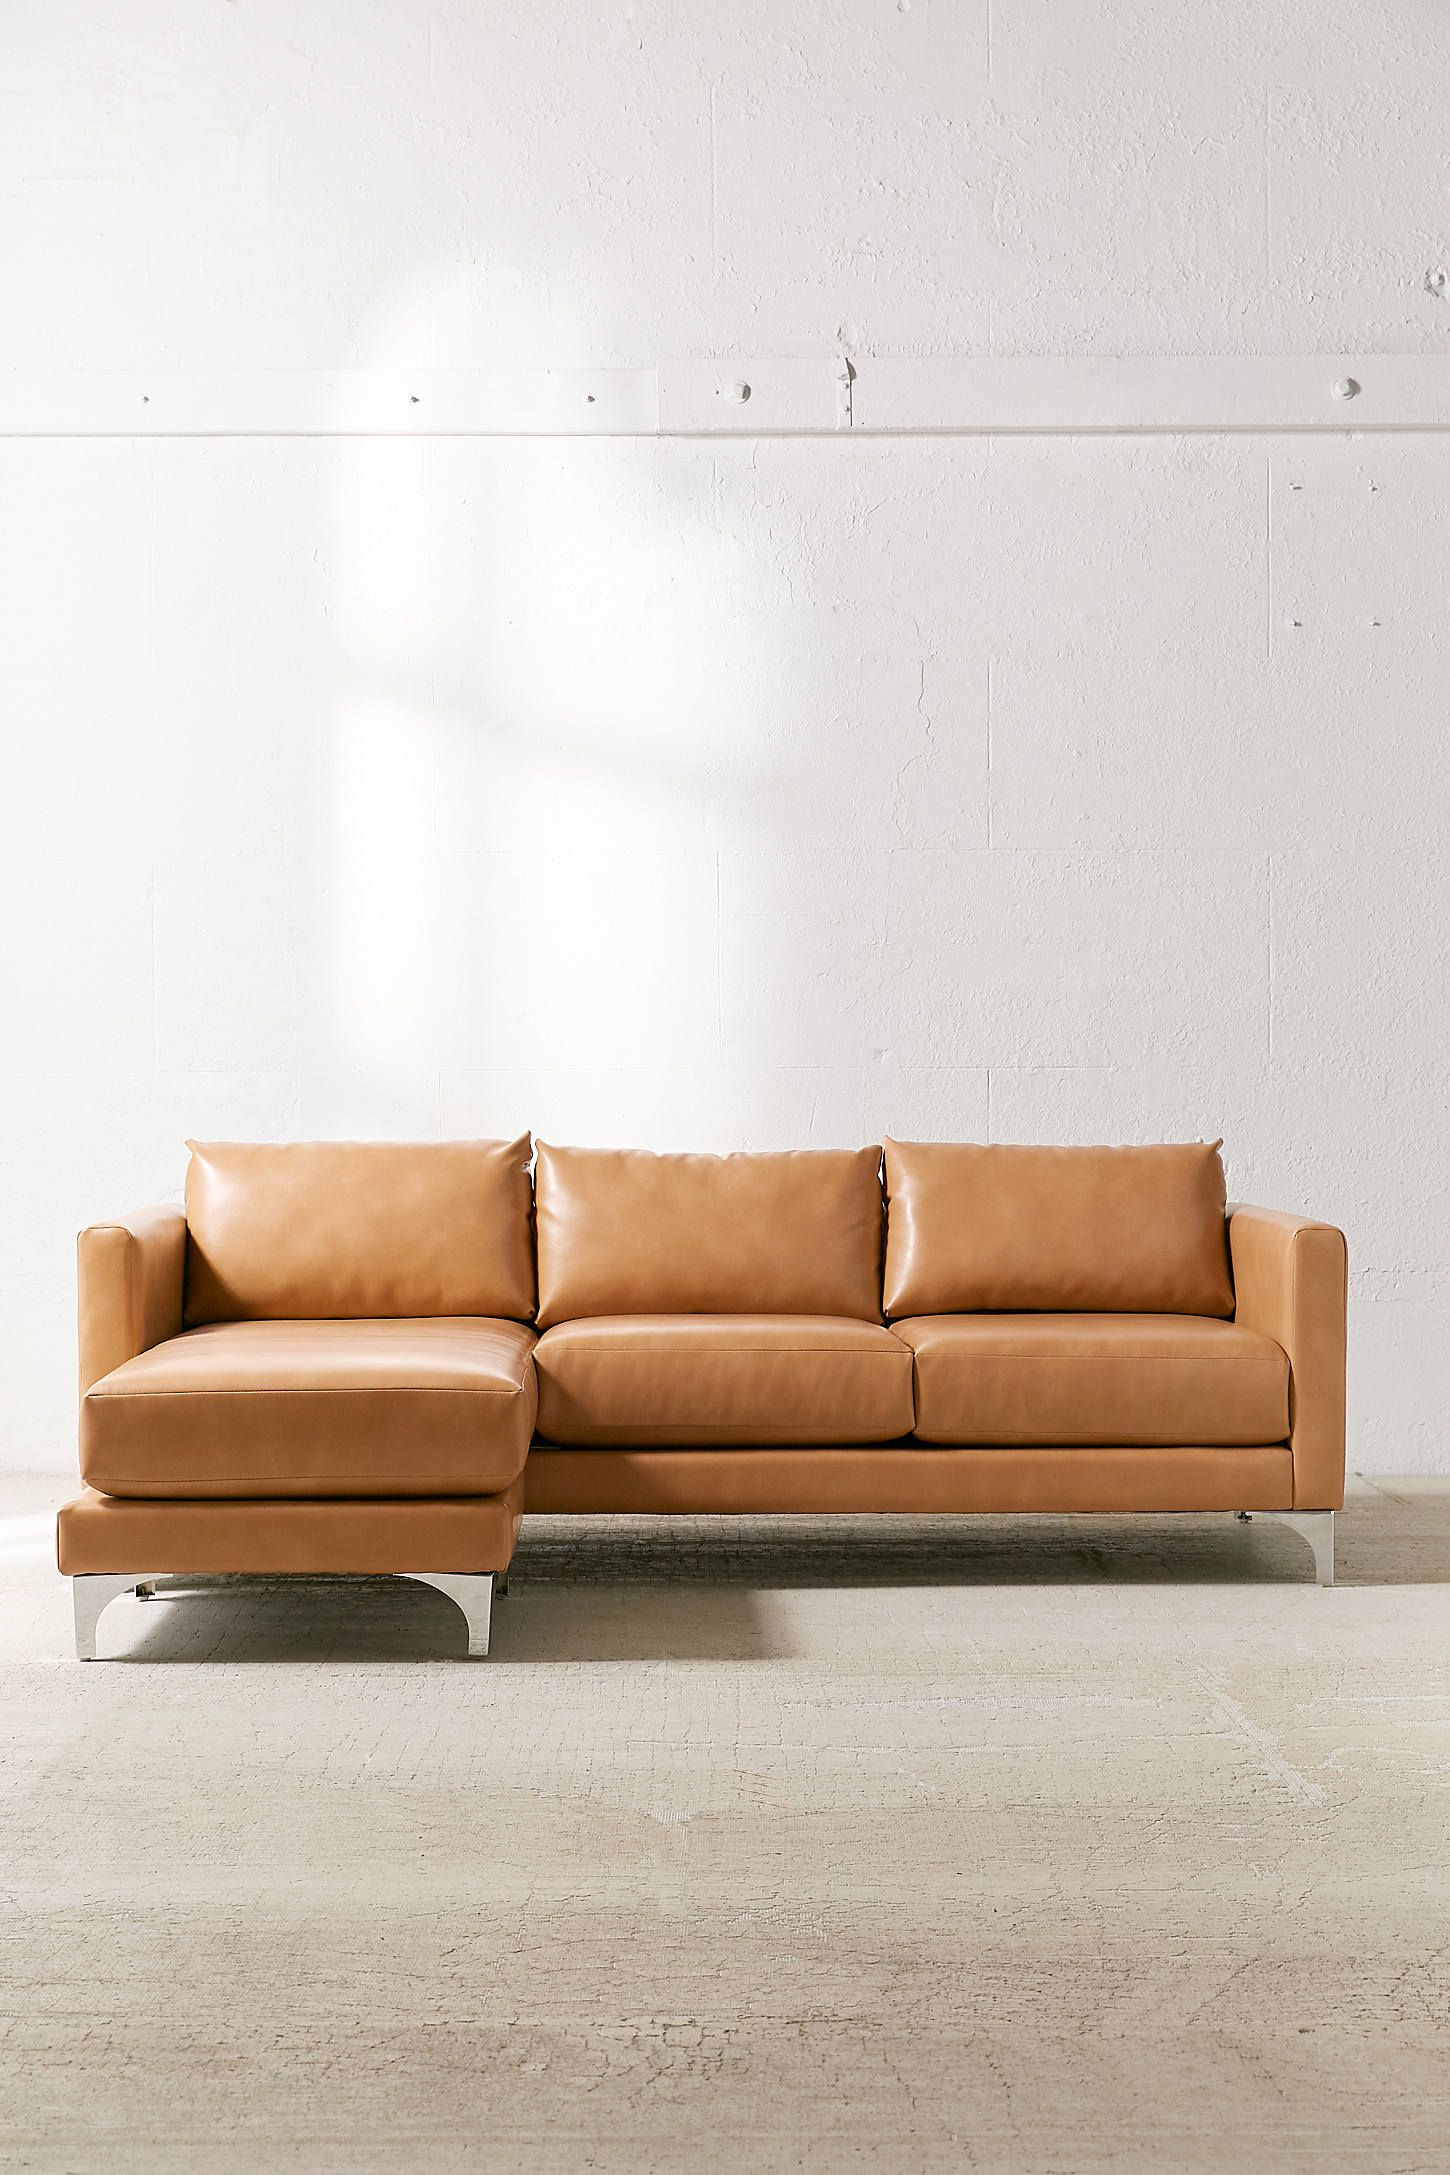 Tremendous Chamberlin Recycled Leather Sectional Sofa In 2019 Decor Pabps2019 Chair Design Images Pabps2019Com